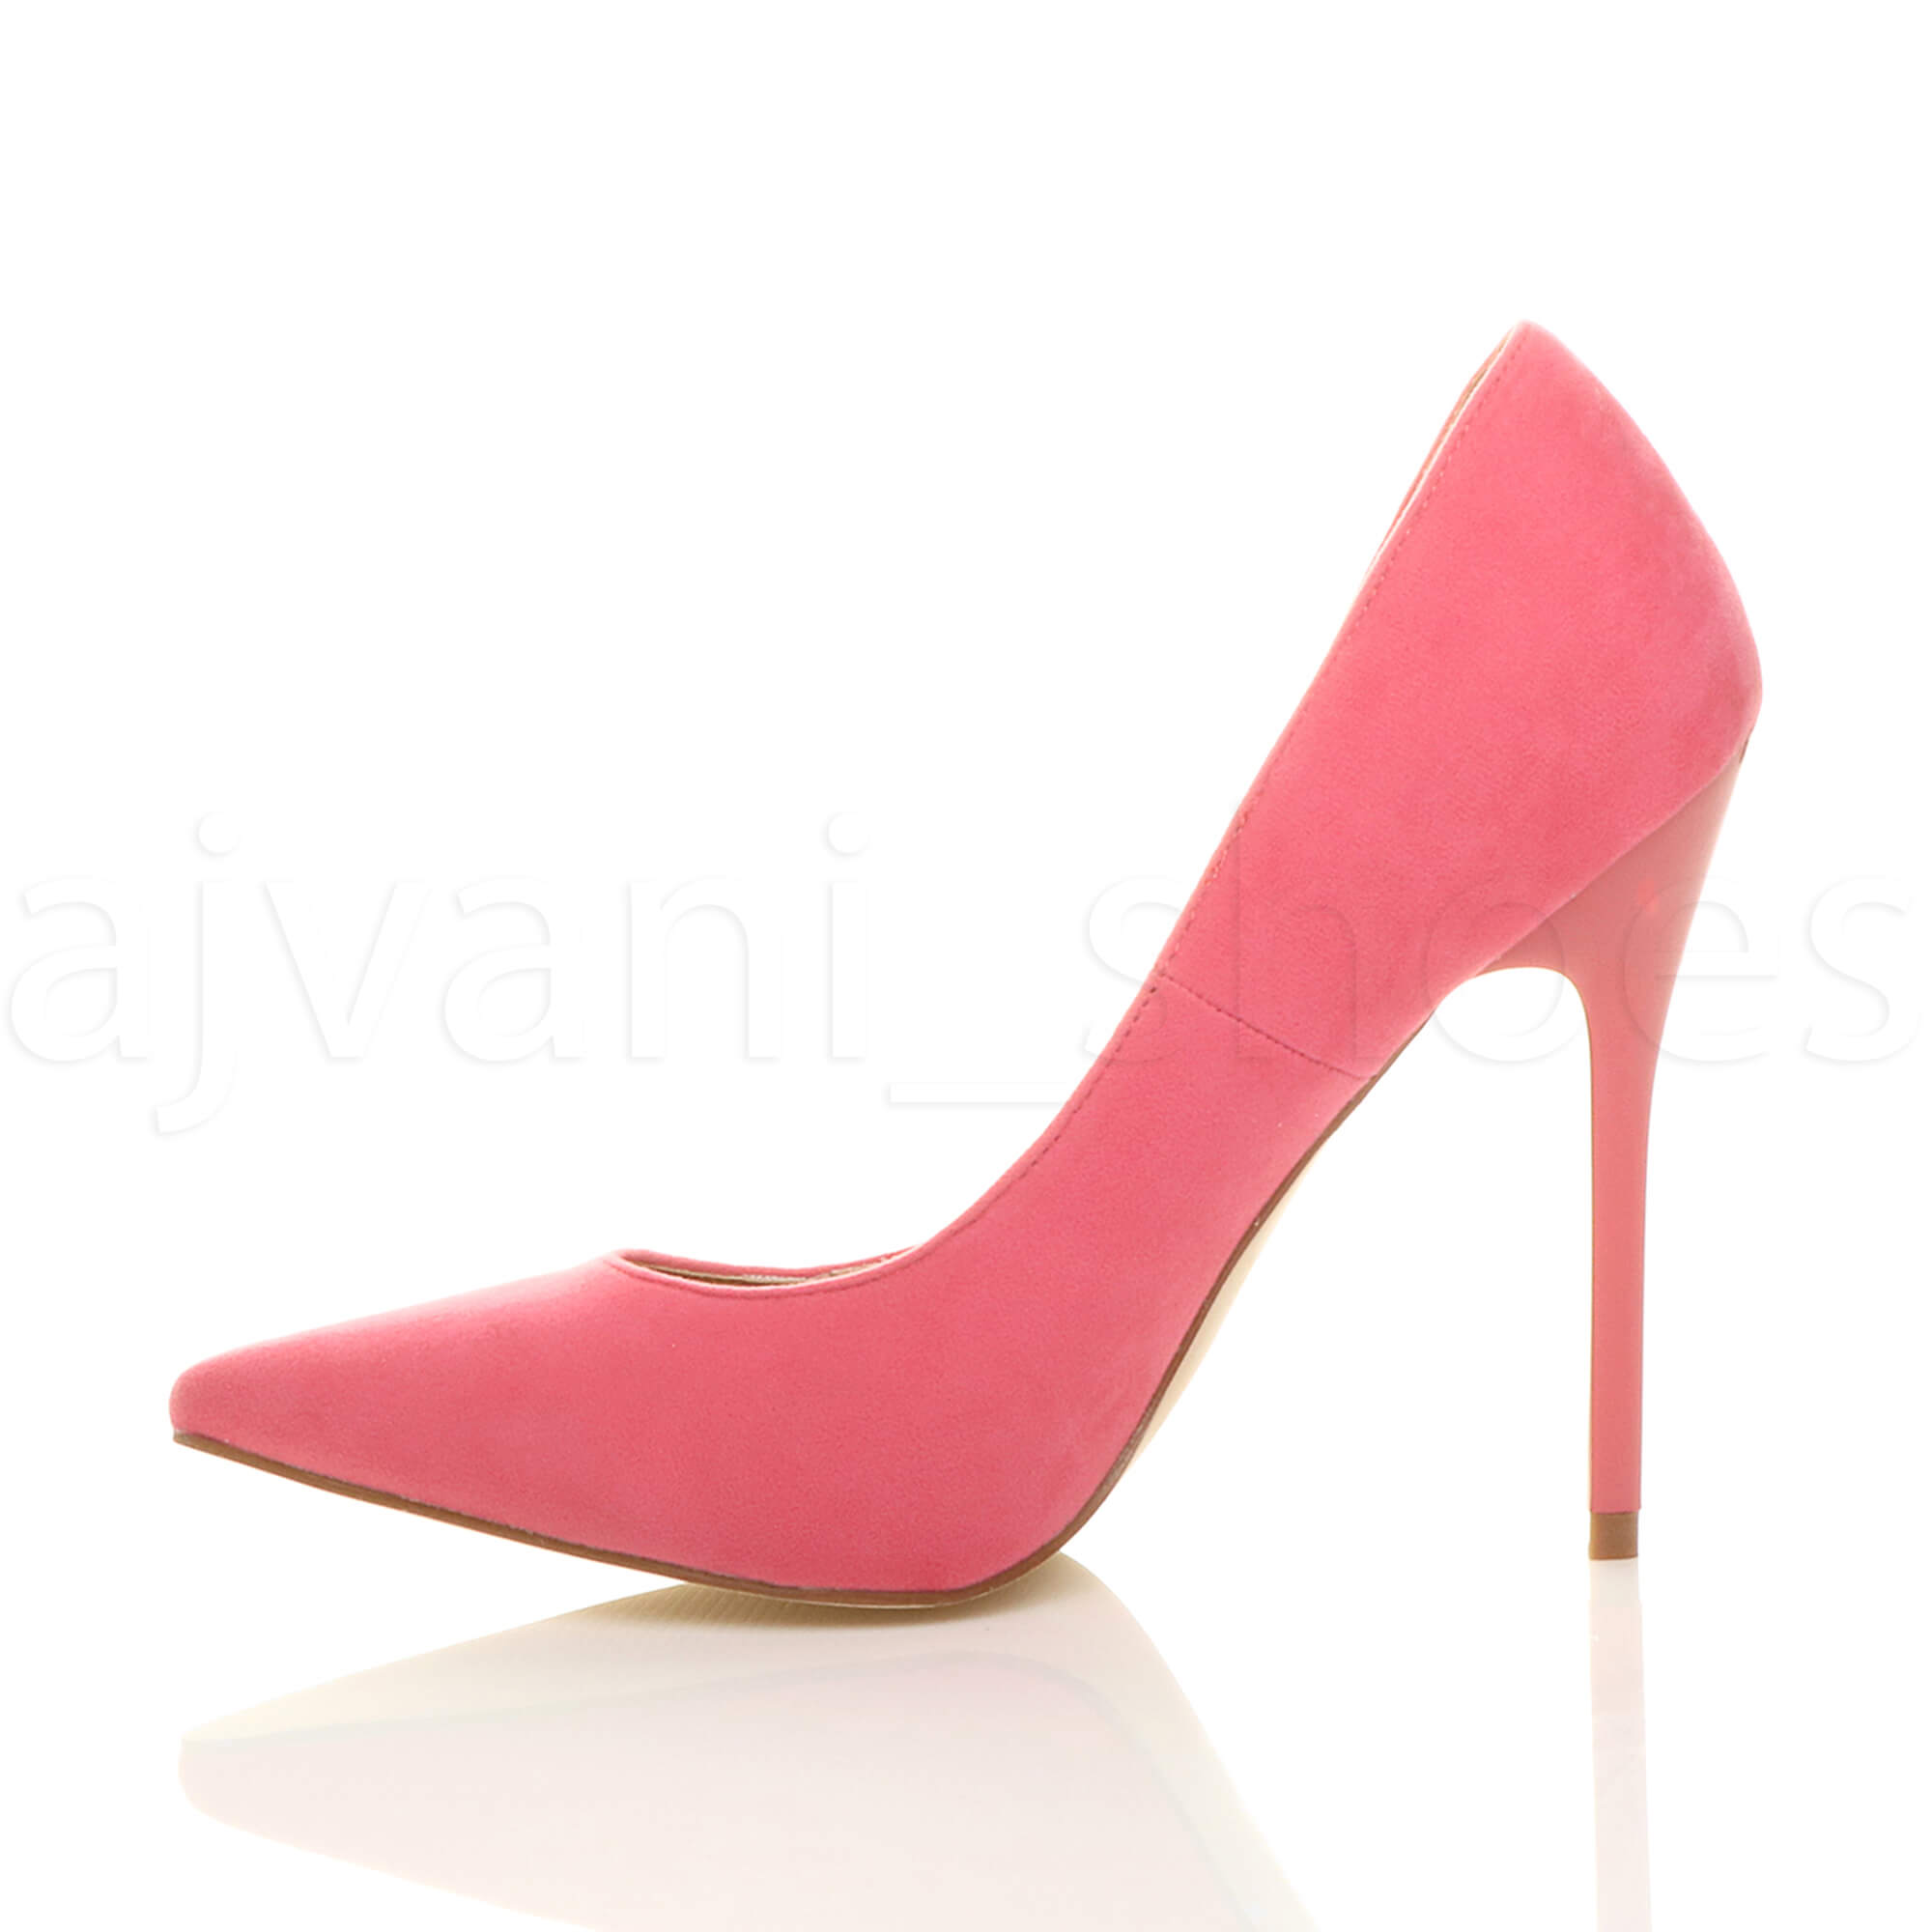 WOMENS-LADIES-HIGH-HEEL-POINTED-CONTRAST-COURT-SMART-PARTY-WORK-SHOES-PUMPS-SIZE thumbnail 154